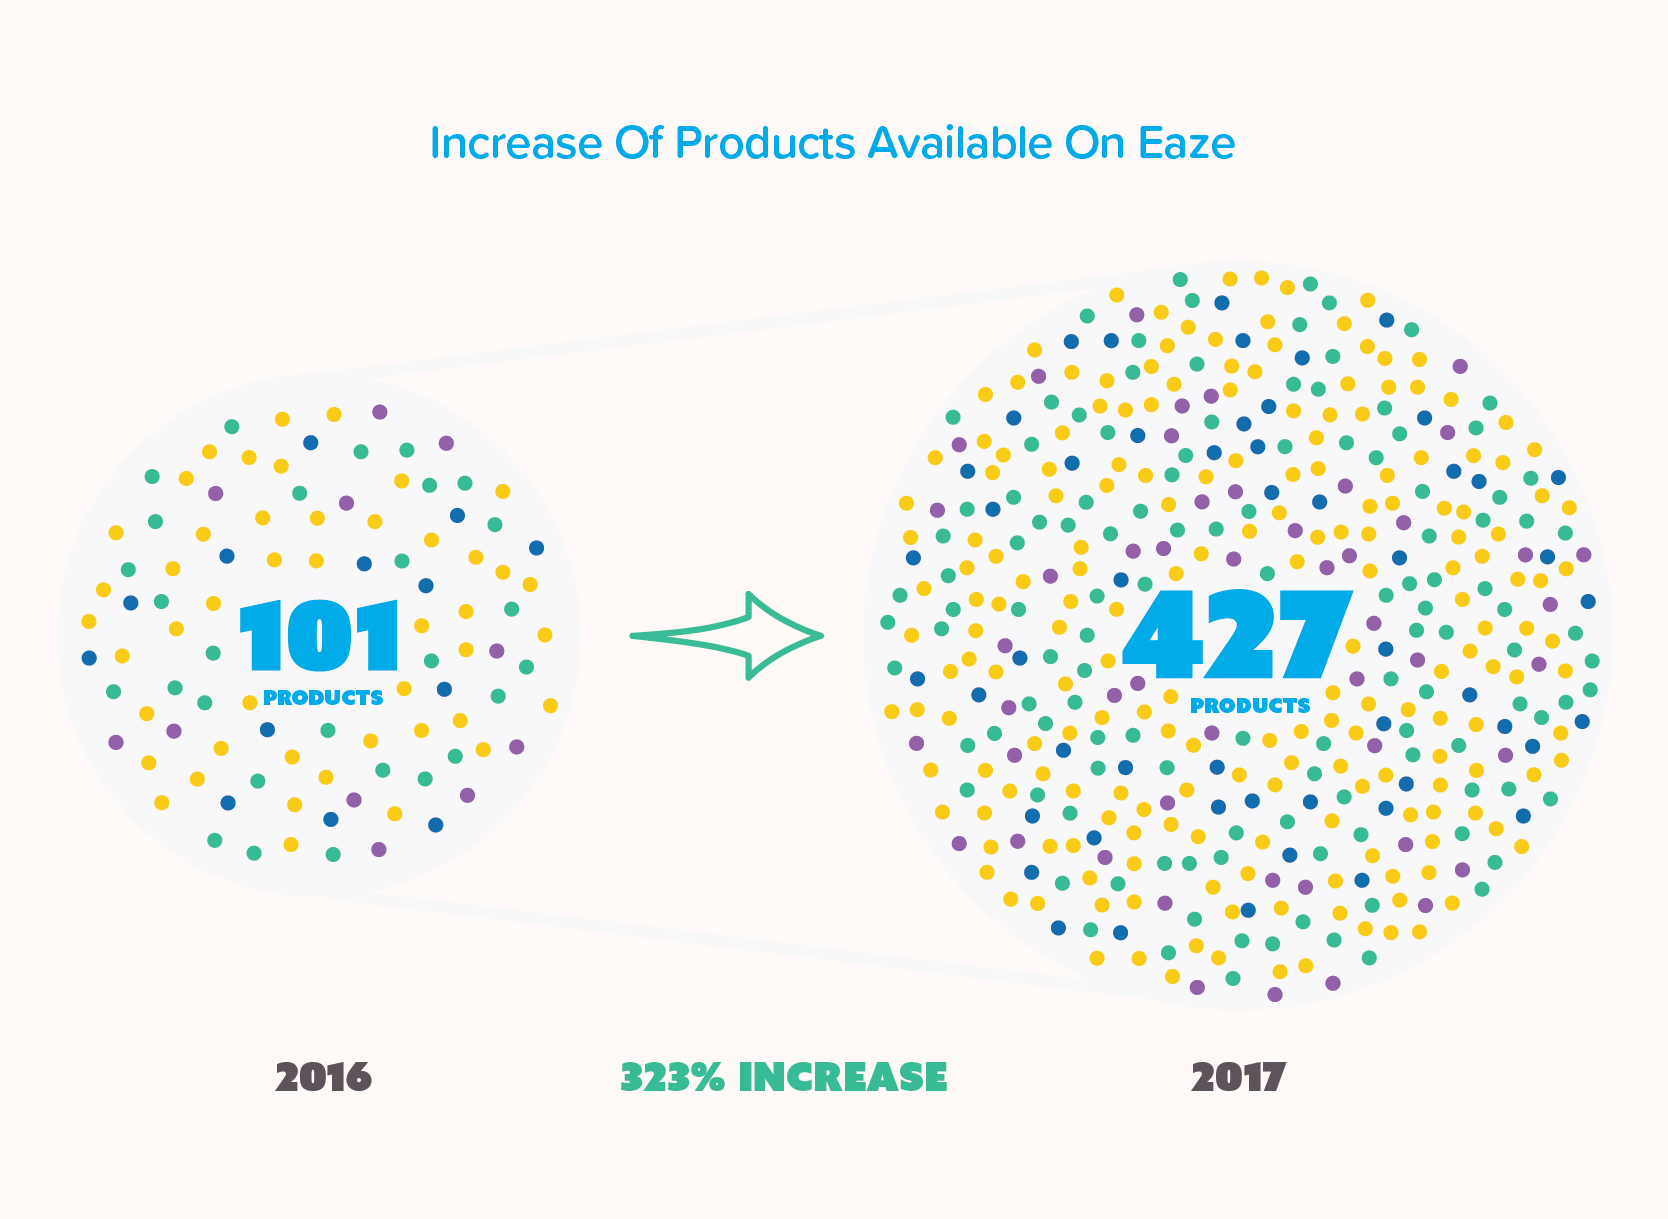 Infographic showing the increase of products available on Eaze